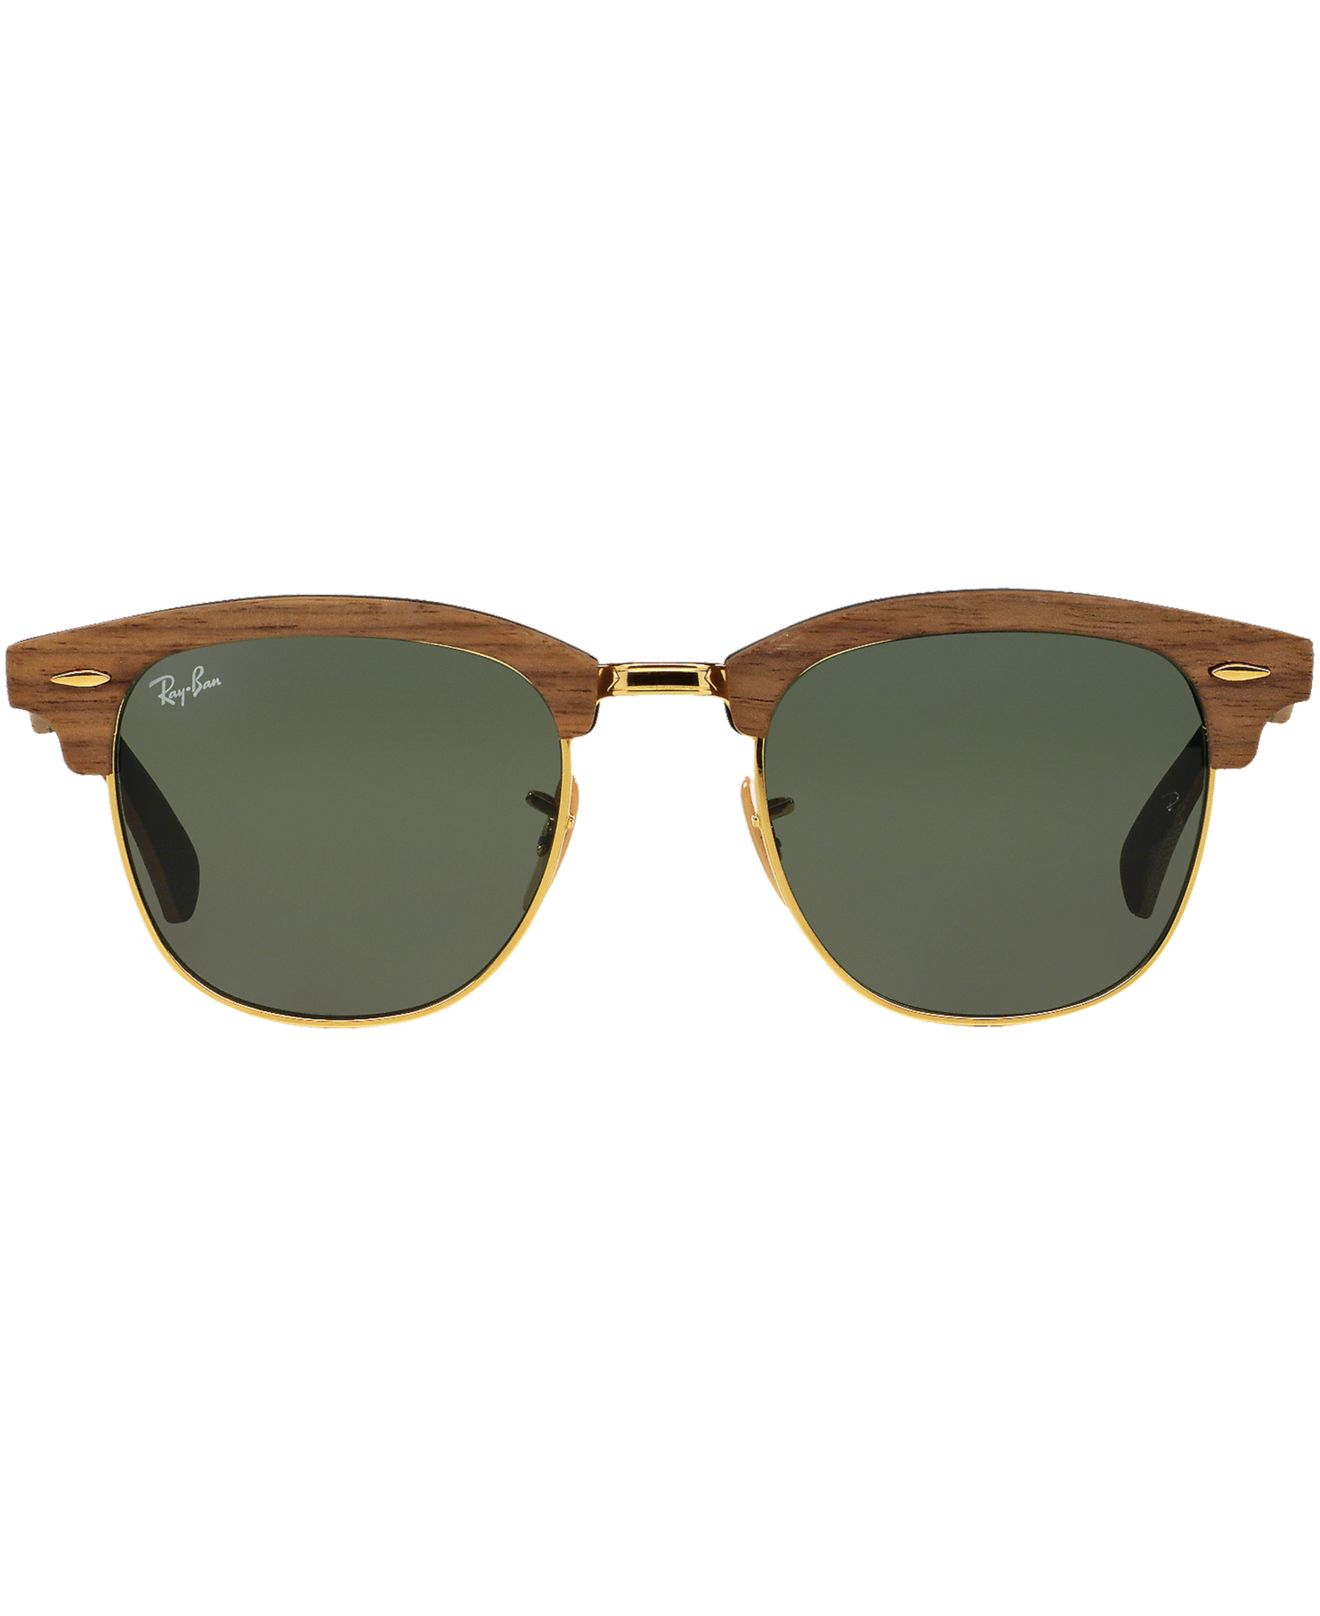 ee2d866170 Ray Ban Rb3016m Clubmaster Wood